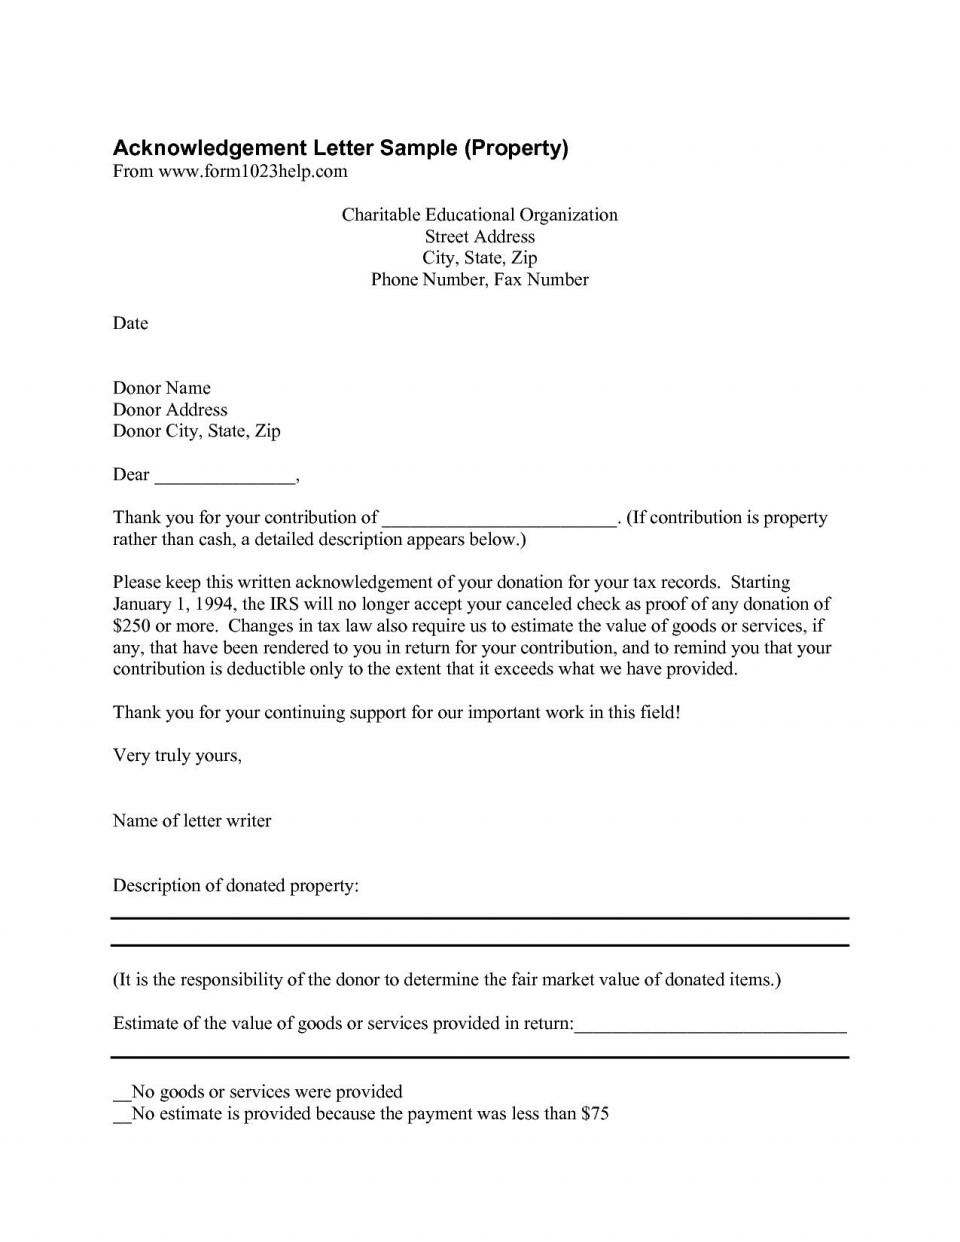 001 Wonderful Fund Raising Letter Template Photo  Fundraising For Mission Trip School Sample Of A Nonprofit Organization960